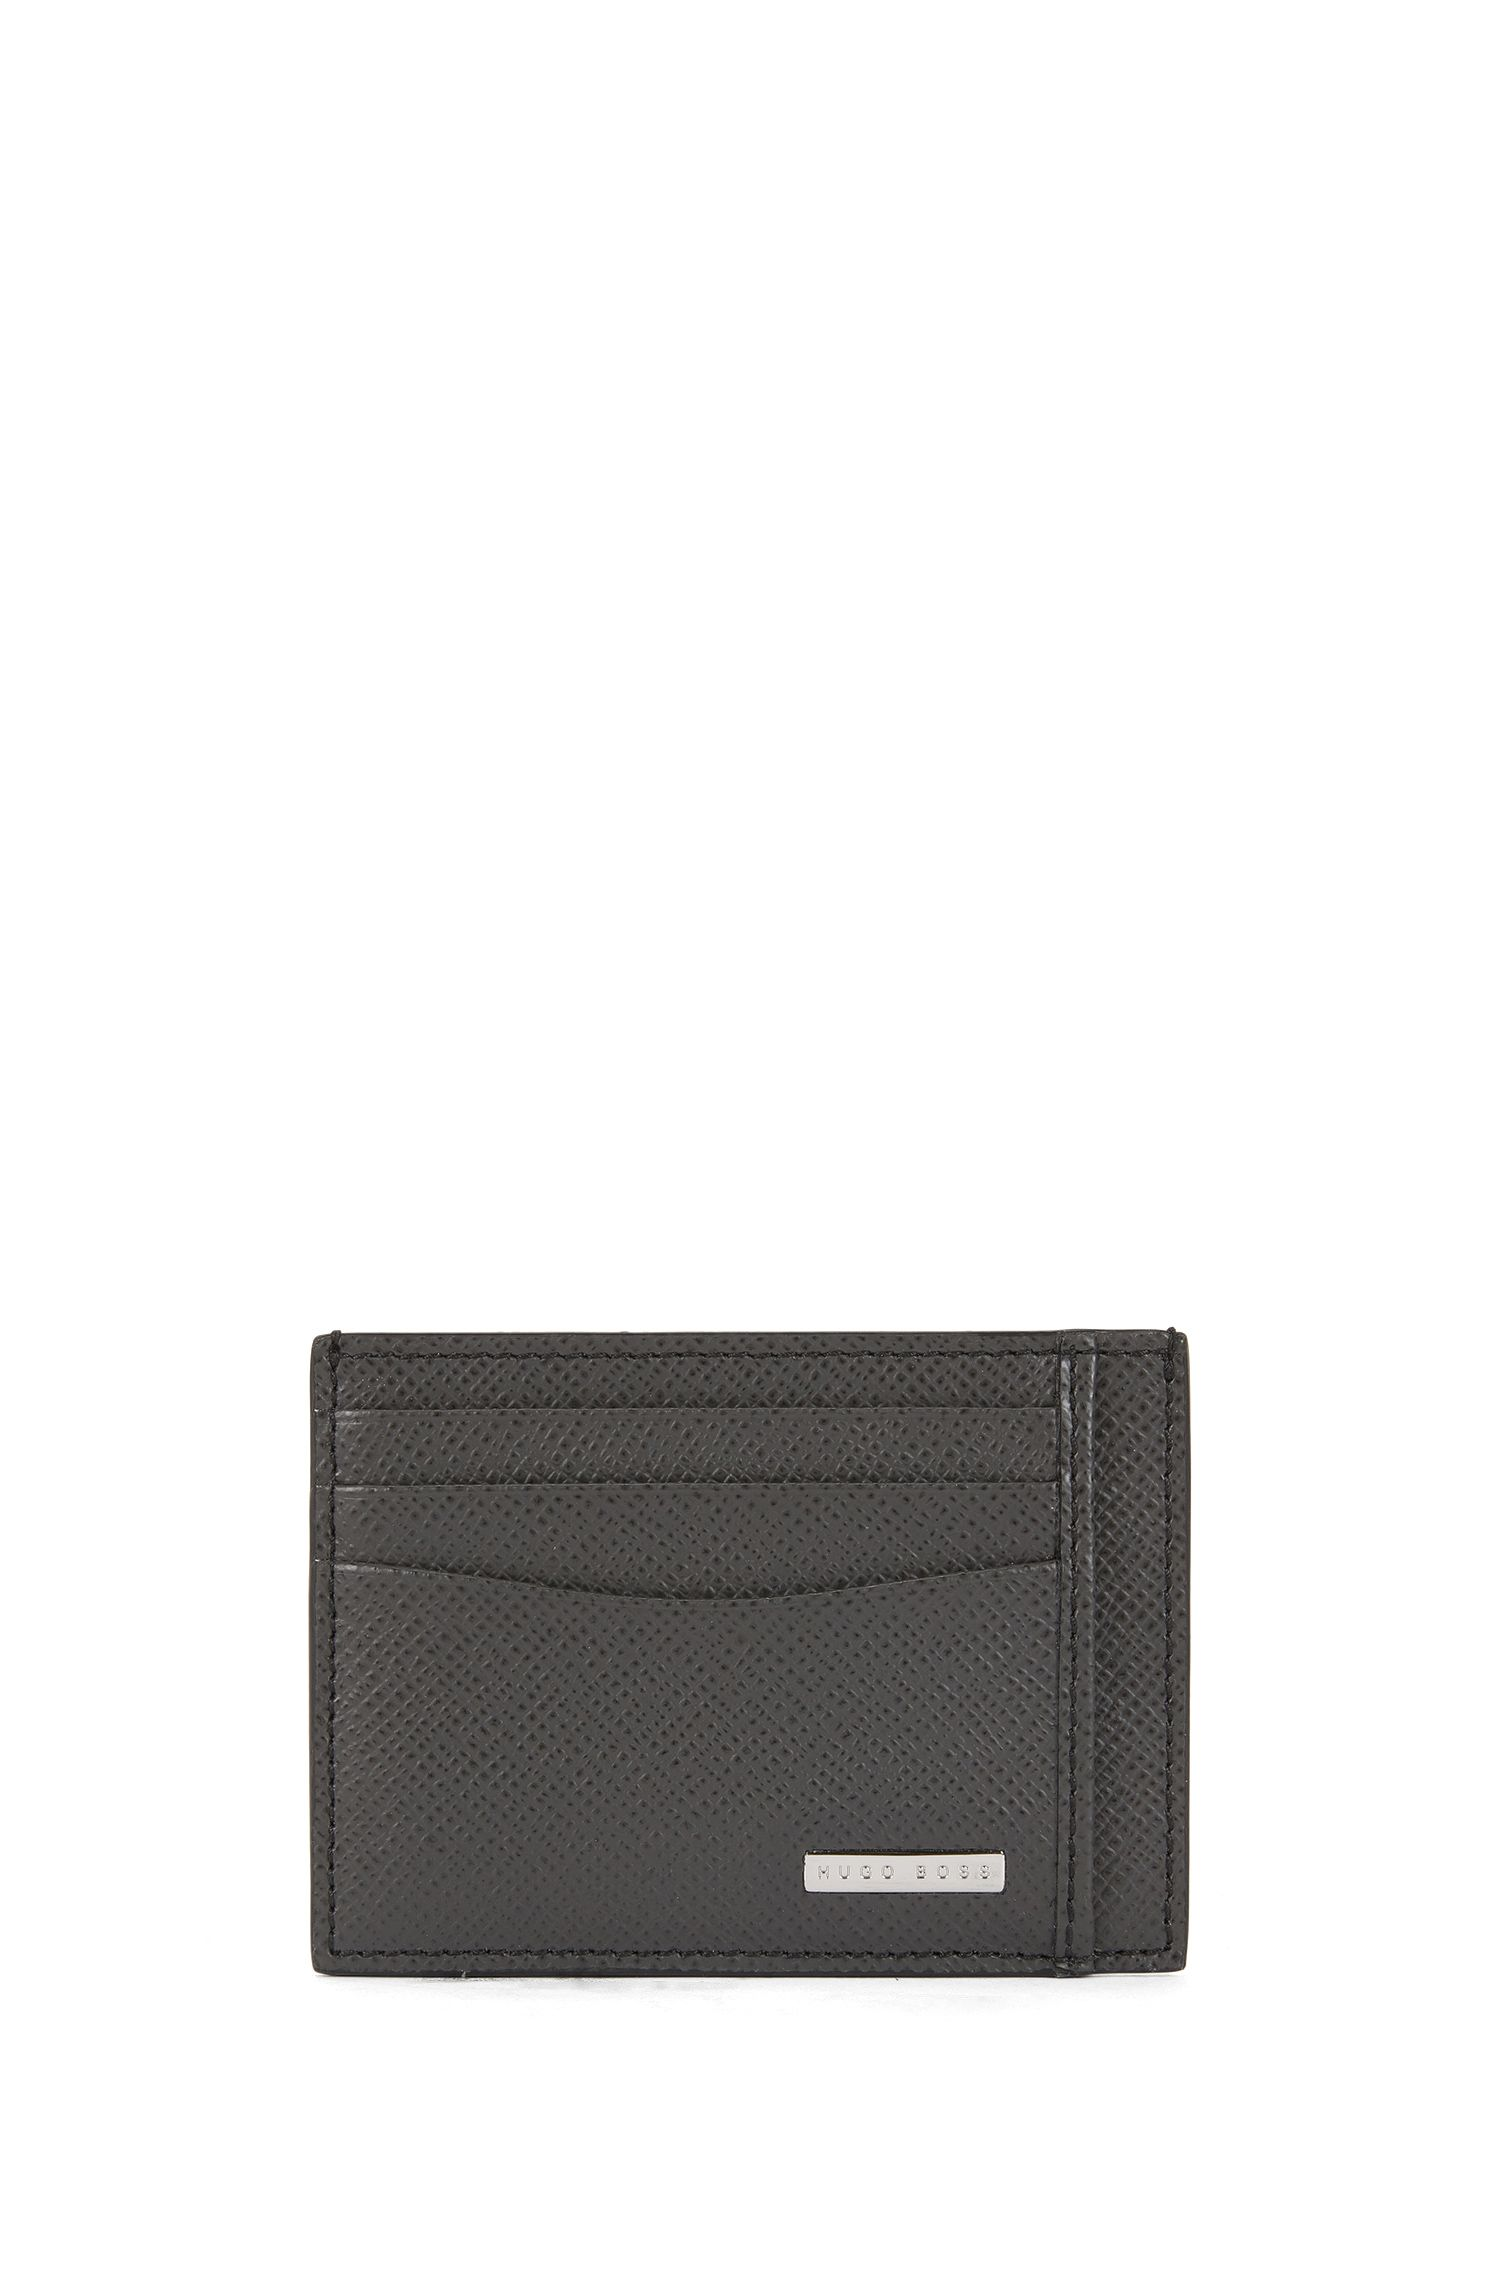 Signature Collection card holder in palmellato leather